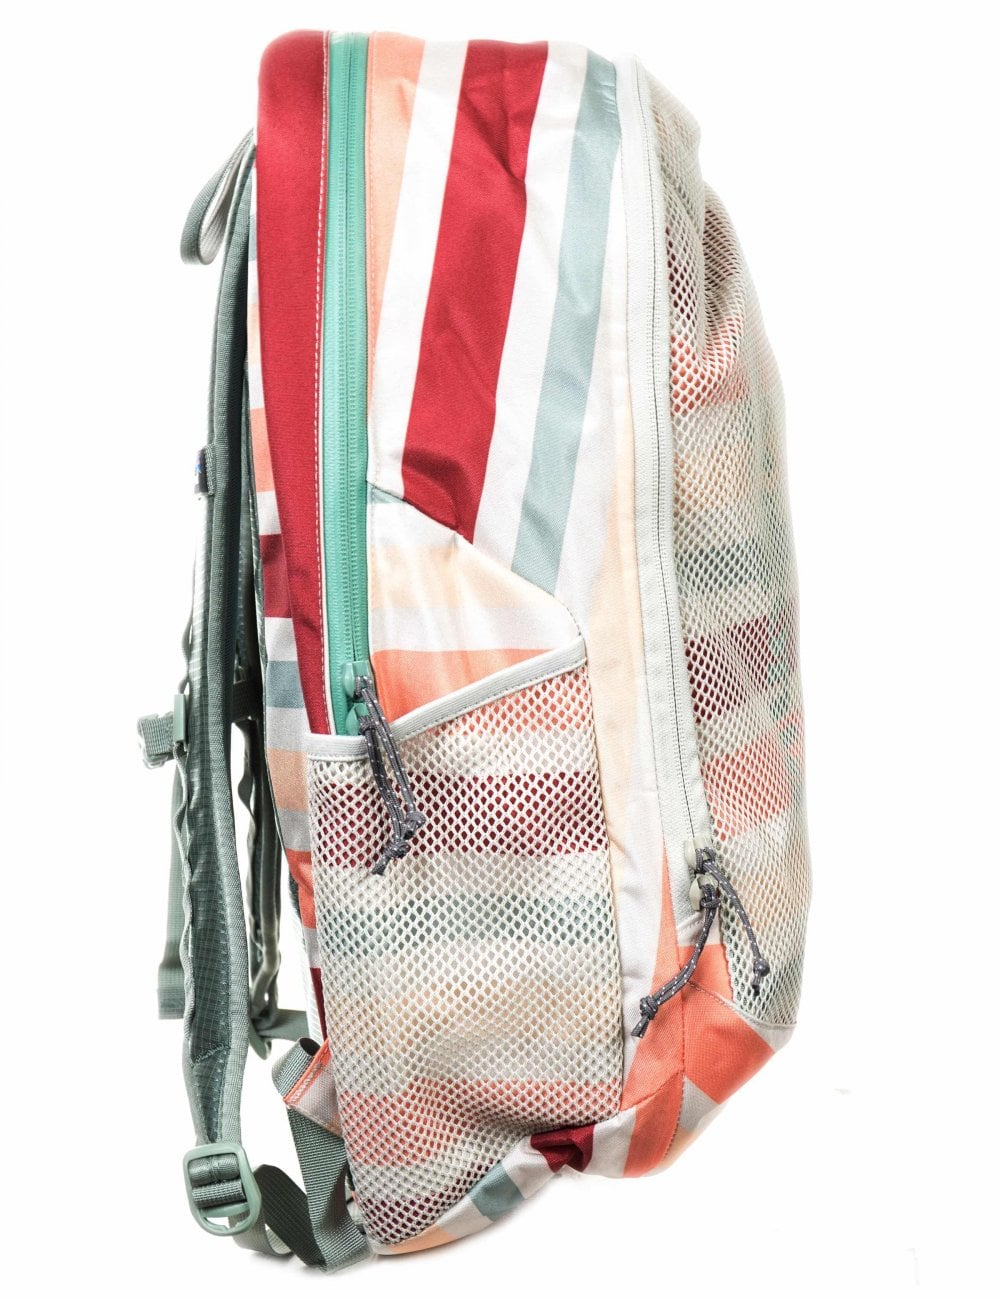 Planing Divider Backpack 30L - Water Ribbons: New Adobe